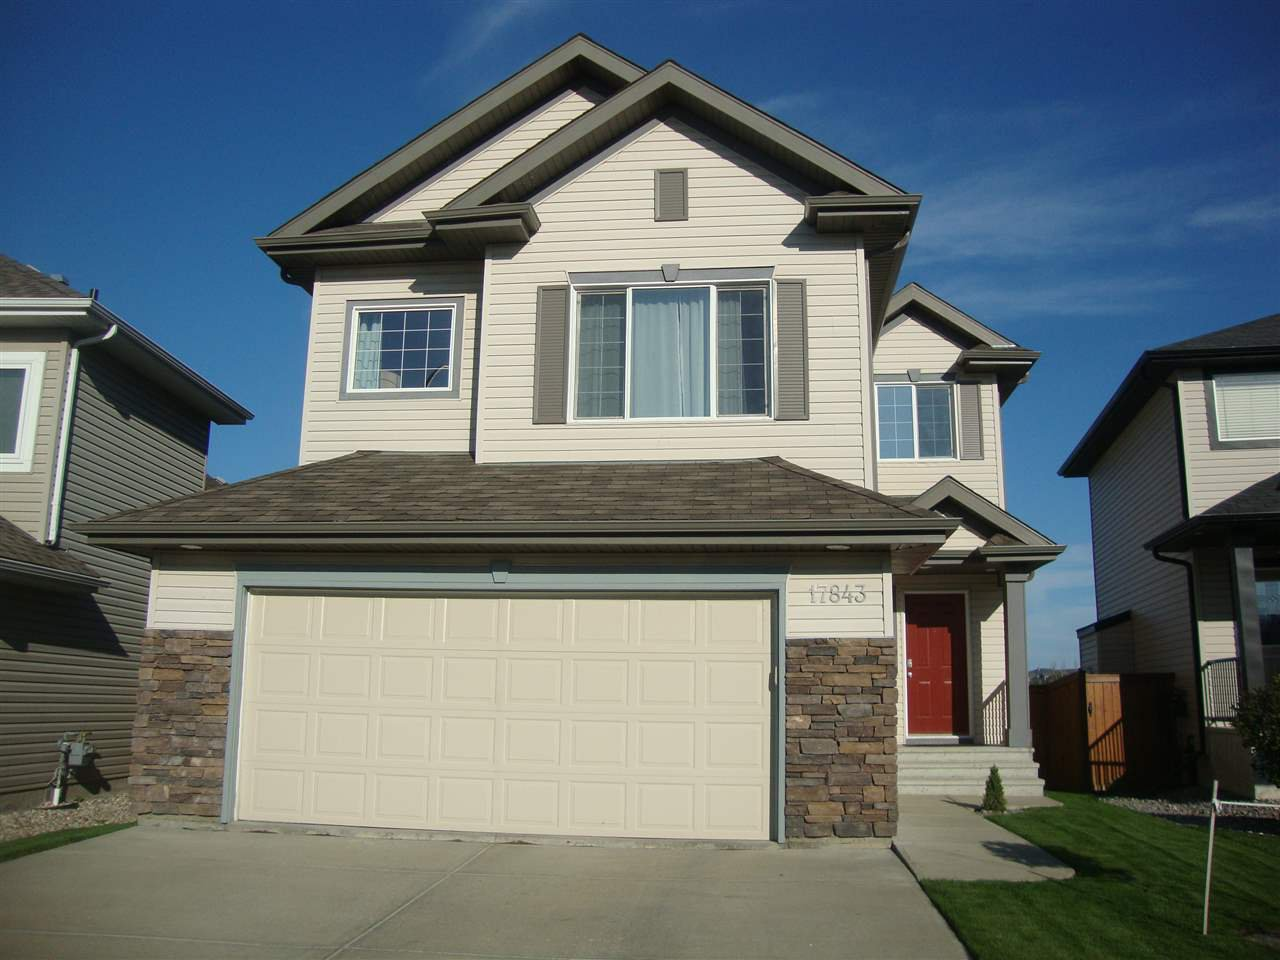 Photo 1: Photos: 17843 84 Street in Edmonton: Zone 28 House for sale : MLS®# E4166906